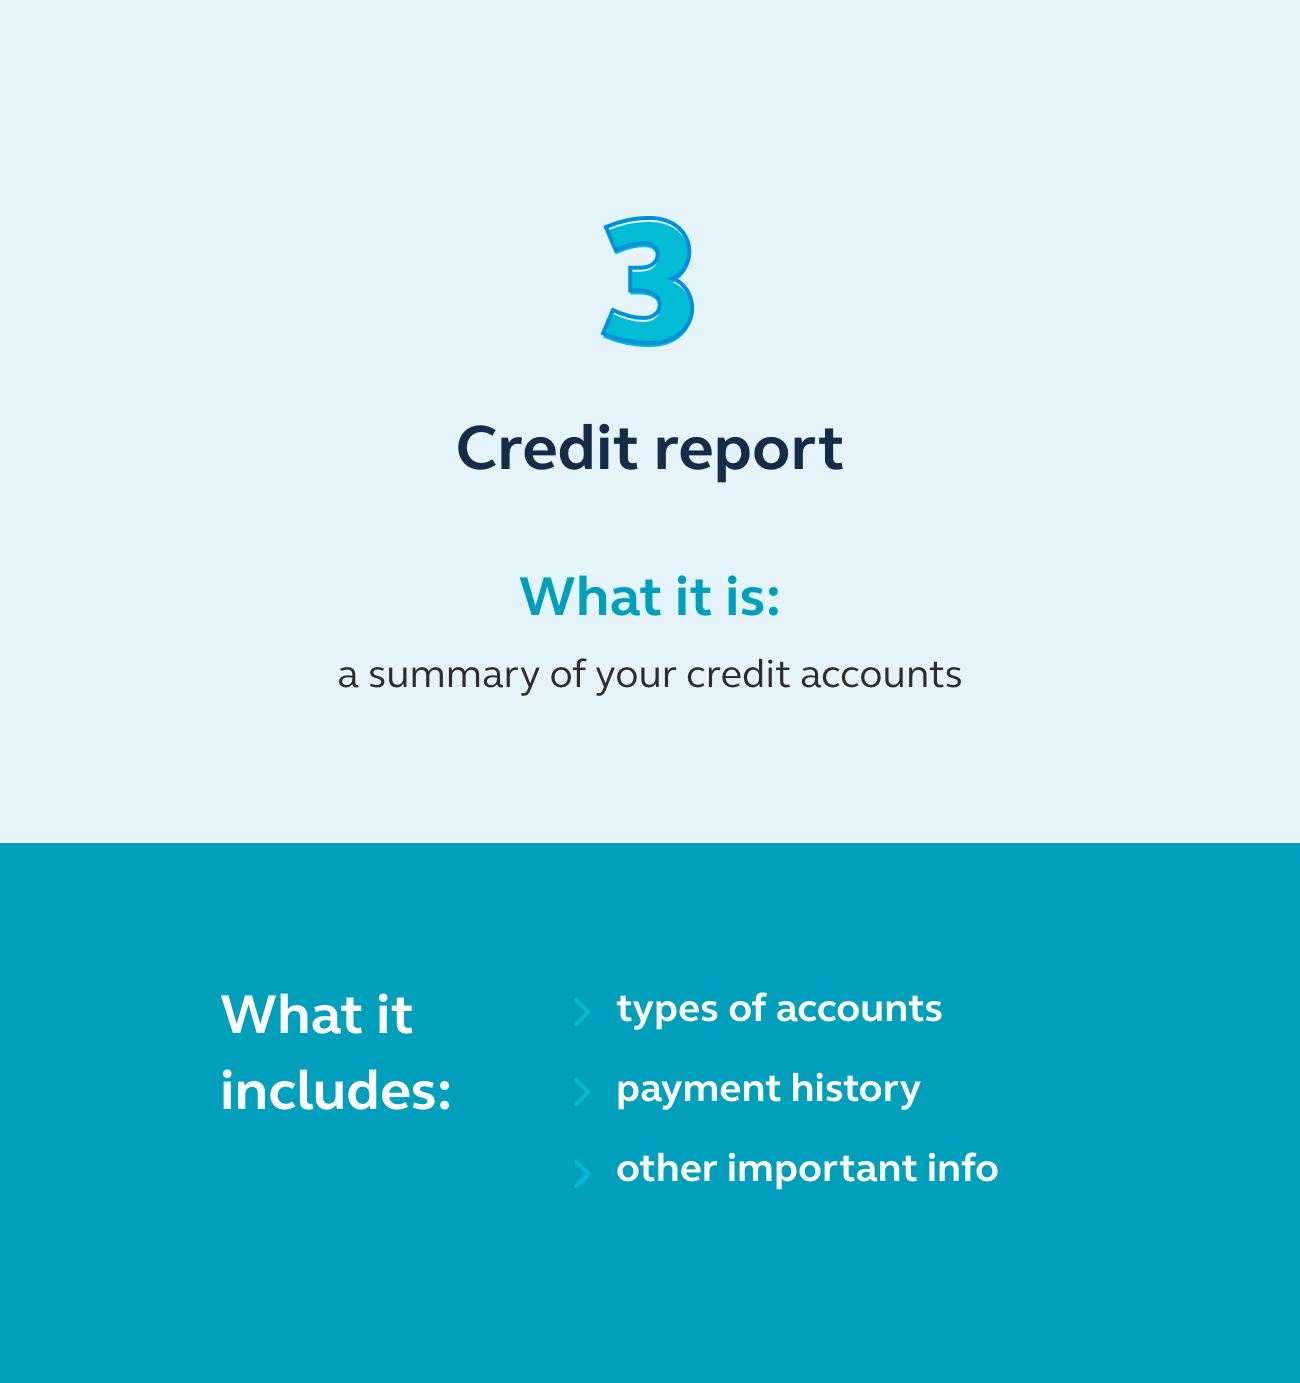 Graphic showing that a credit report is a summary of your credit accounts.